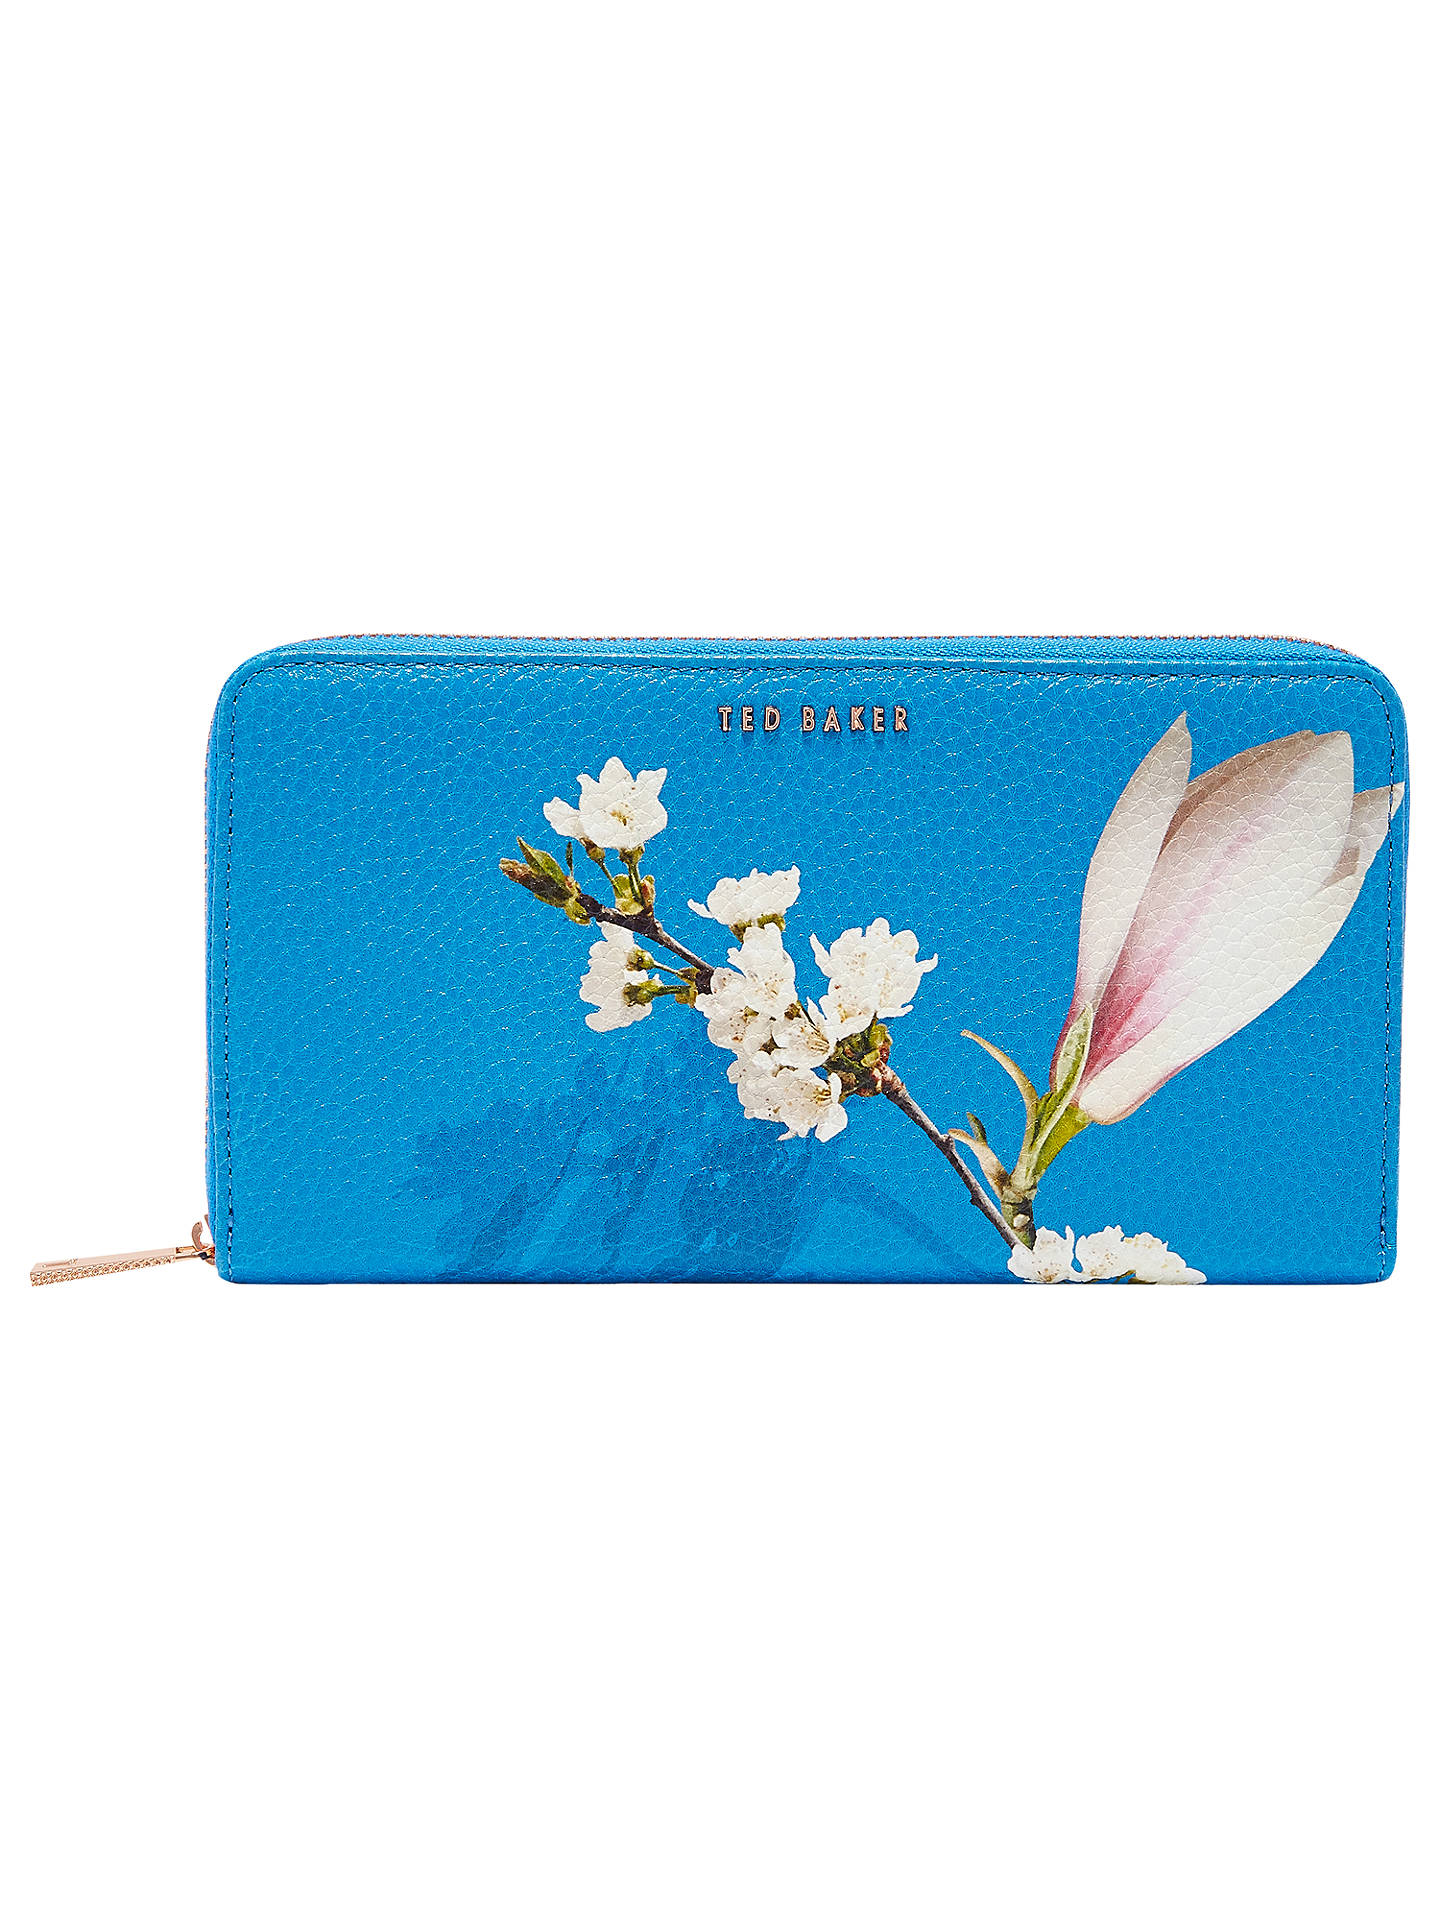 0a09575dbc Buy Ted Baker Darnia Harmony Leather Matinee Purse, Bright Blue Online at  johnlewis.com ...